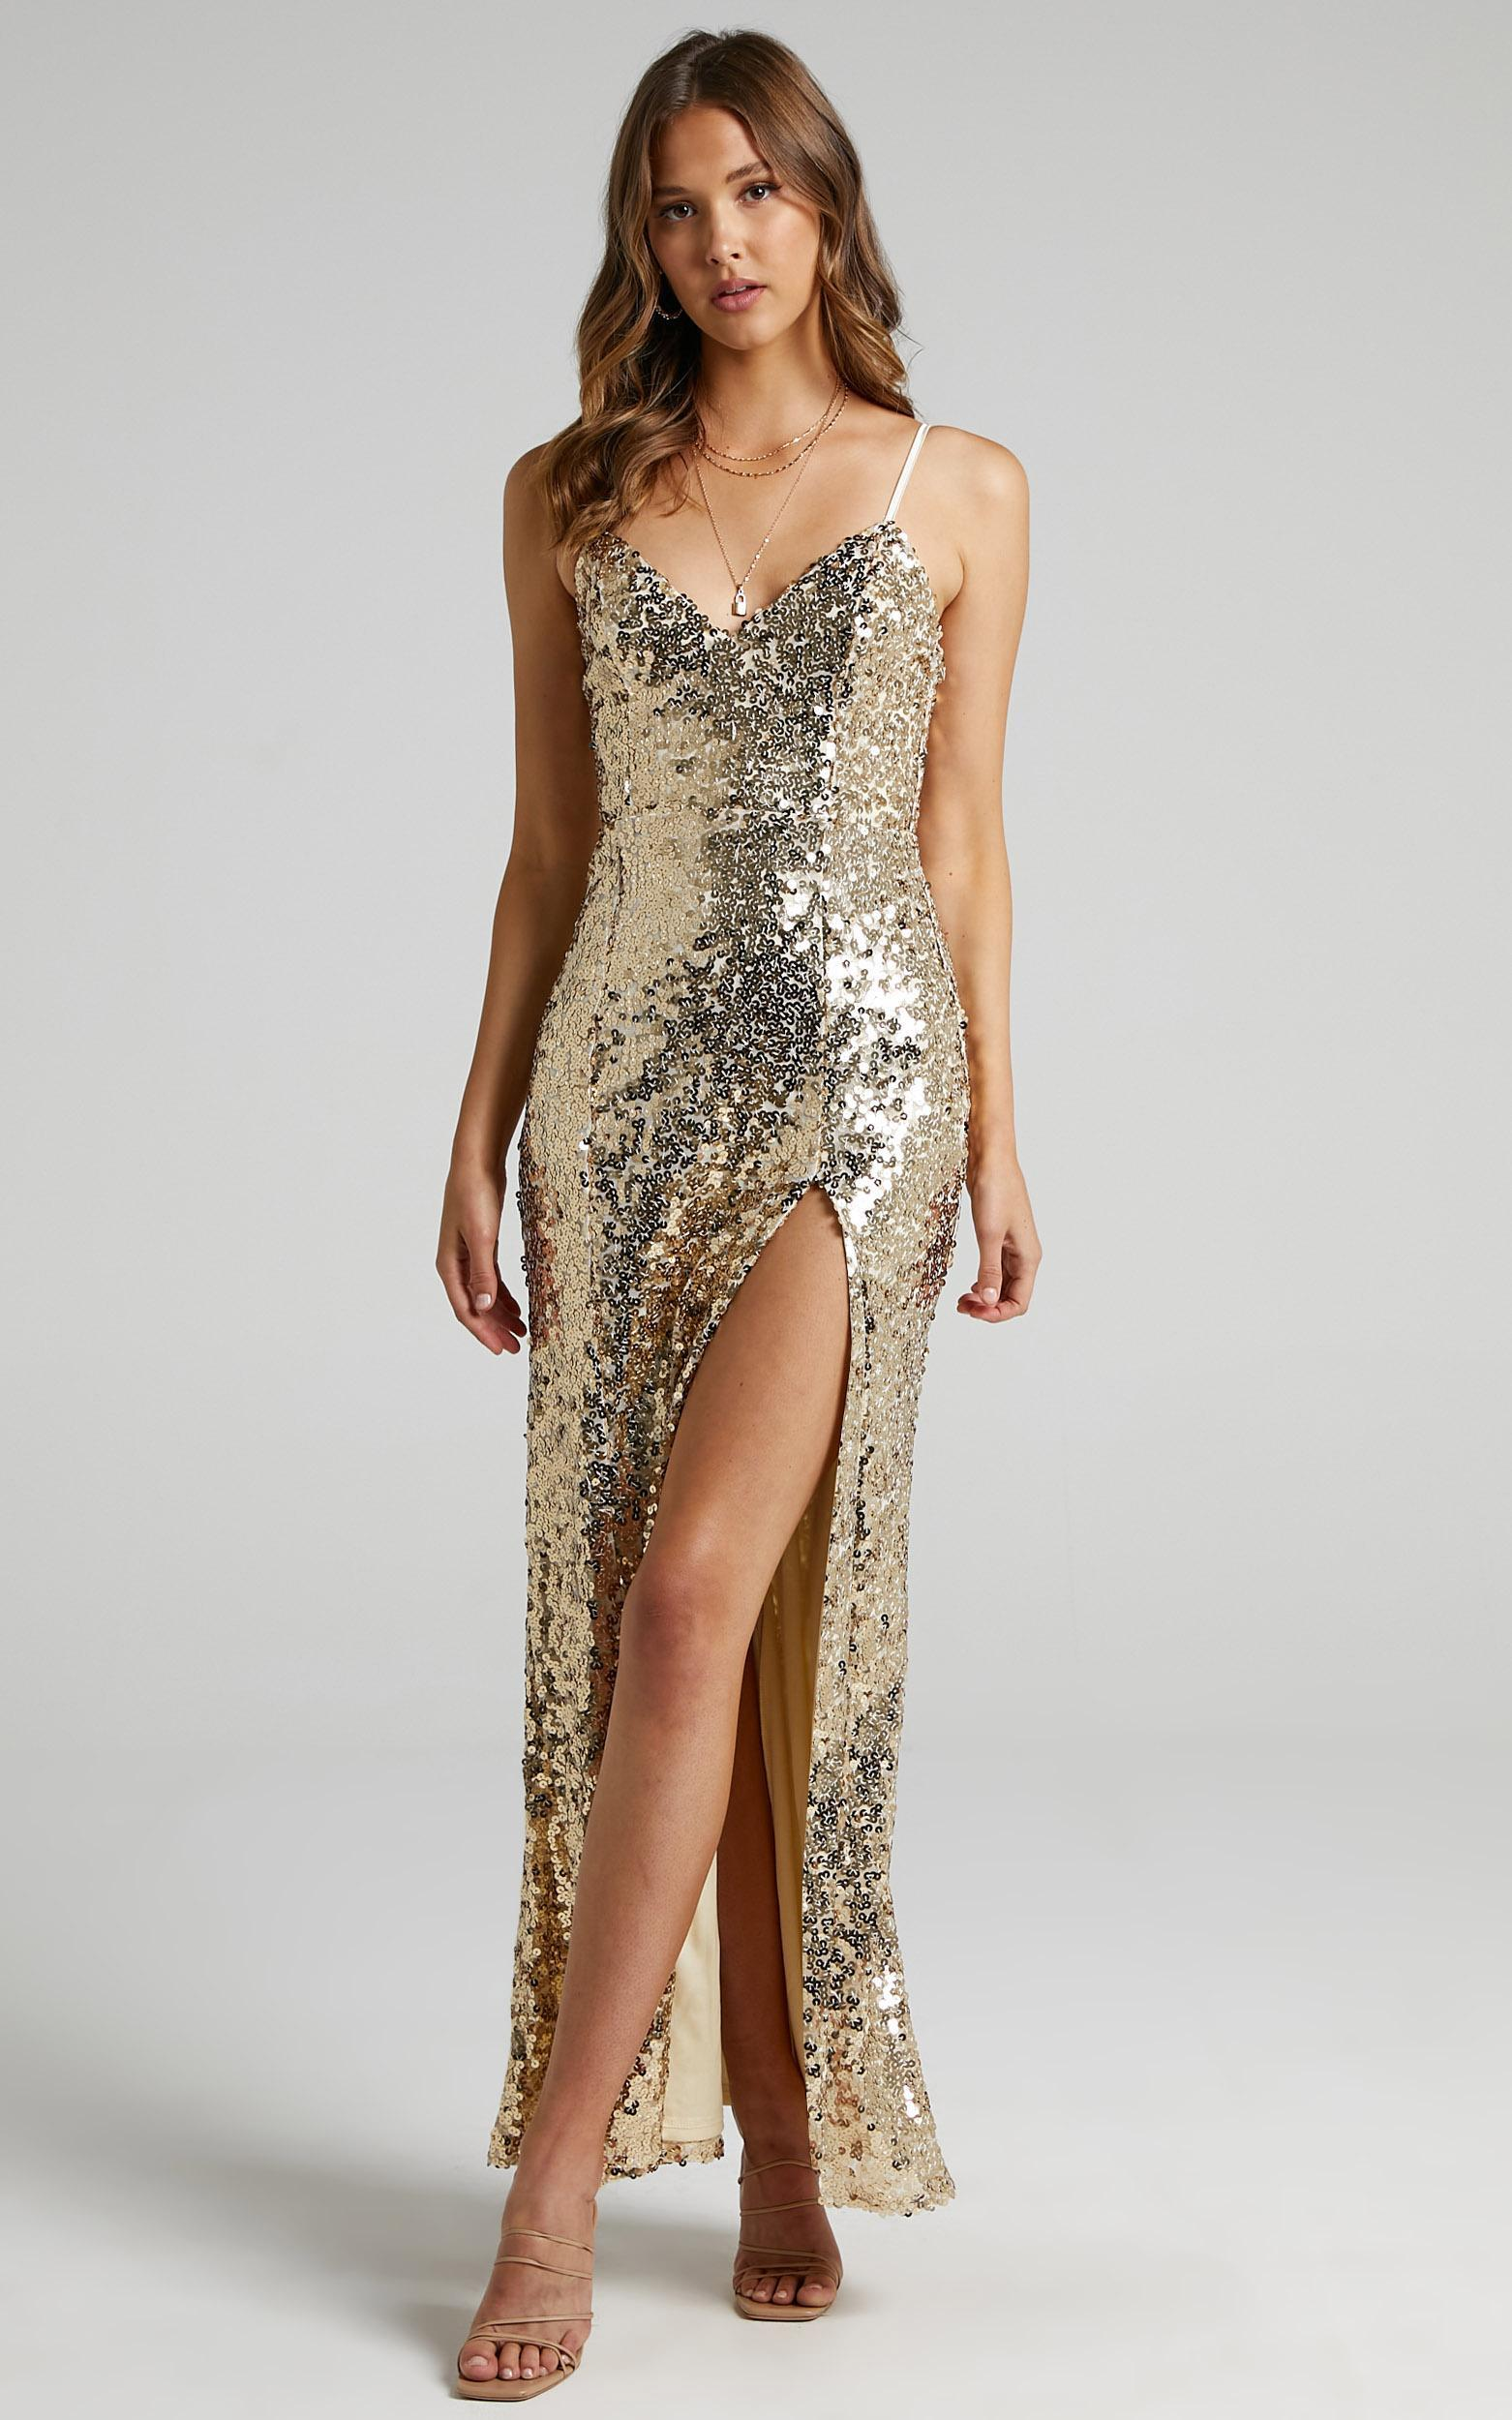 Mikela Dress in Gold Sequin - 6 (XS), Gold, hi-res image number null